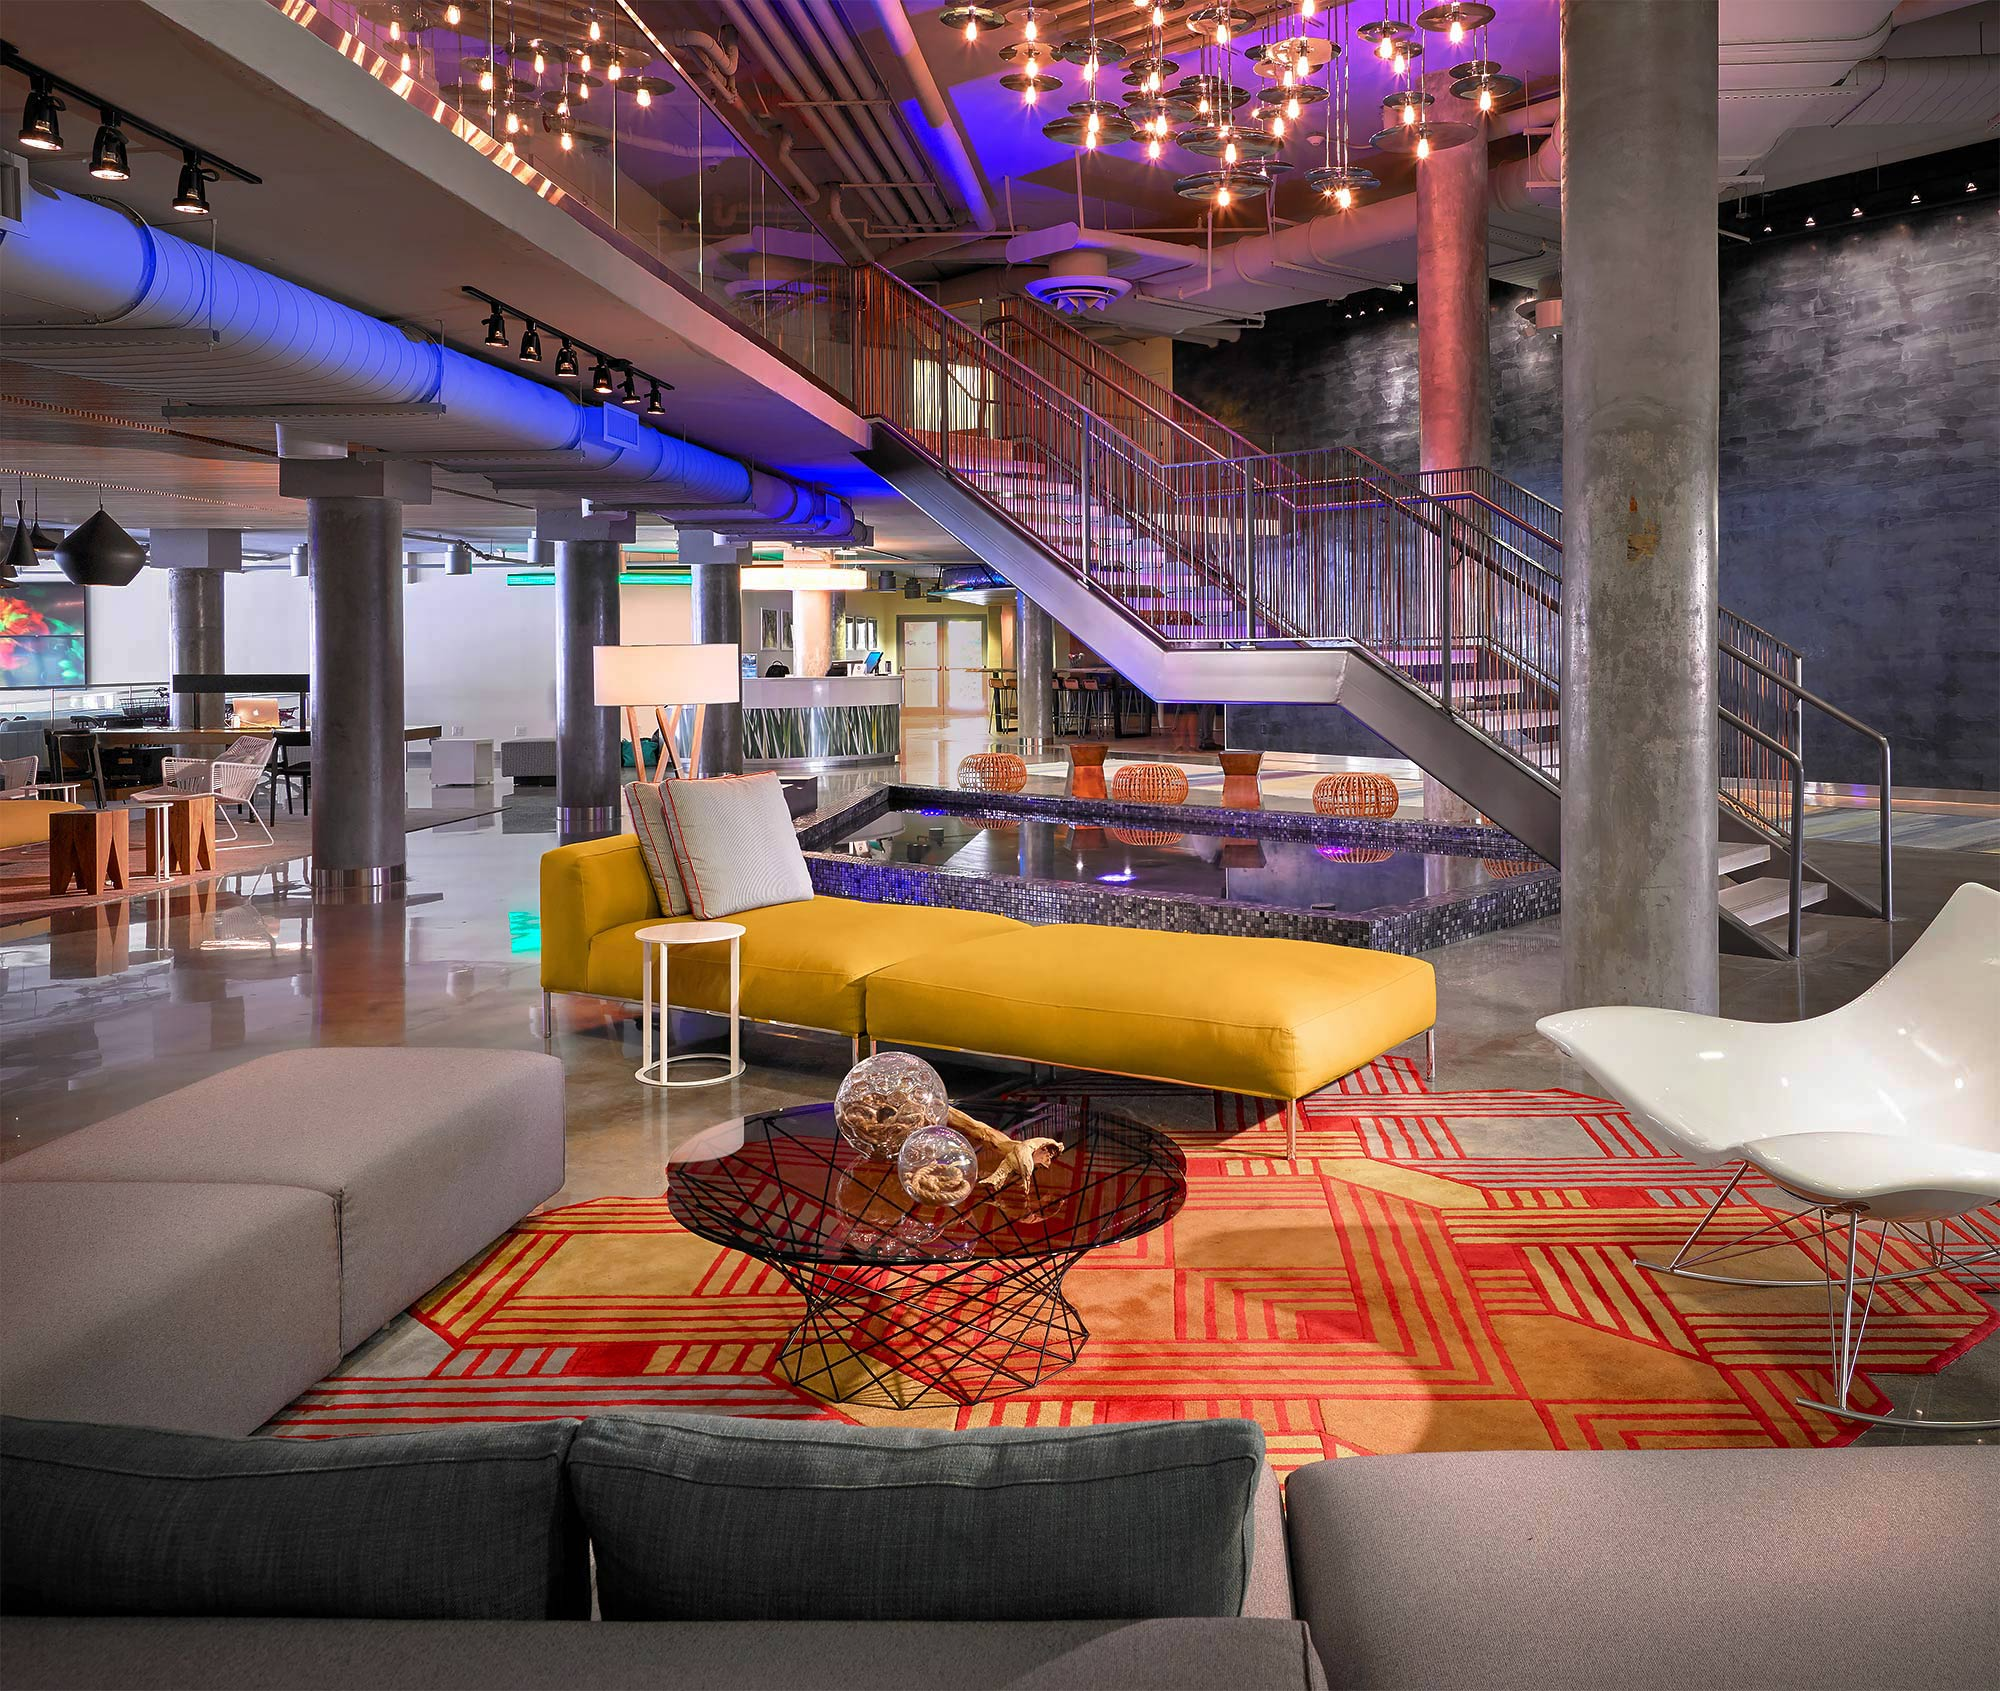 Aloft-Hotel-Miami-Beach-Lobby